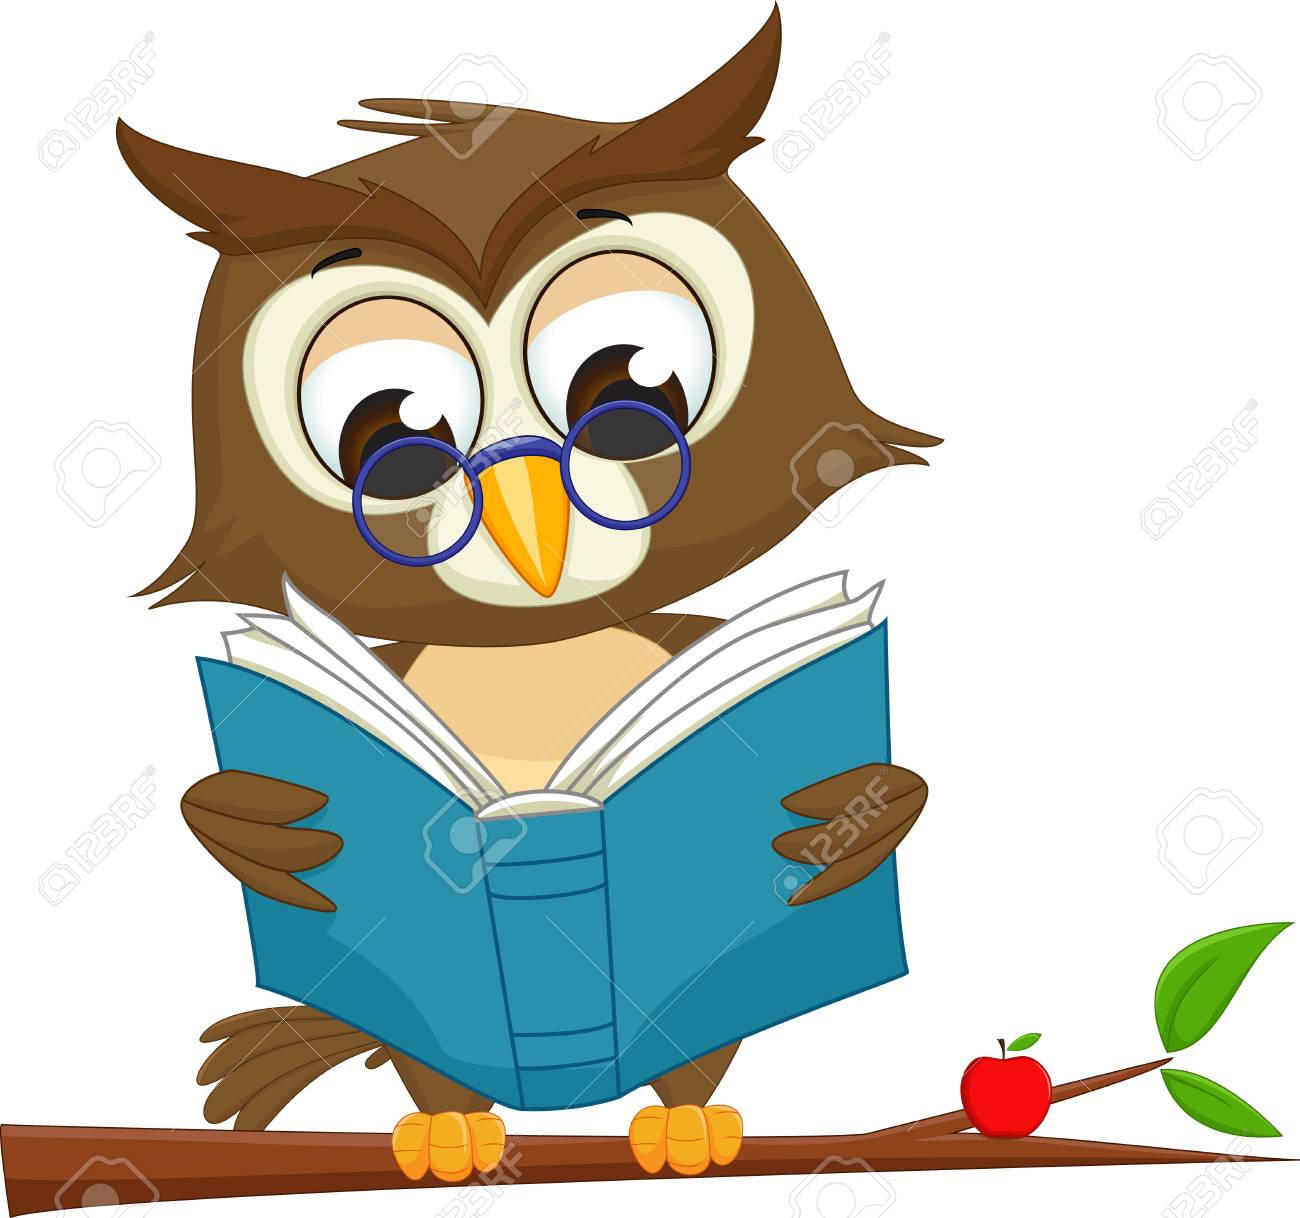 owl reading a book on tree branch royalty free cliparts vectors rh 123rf com Hamburger Clip Art Skiing Clip Art